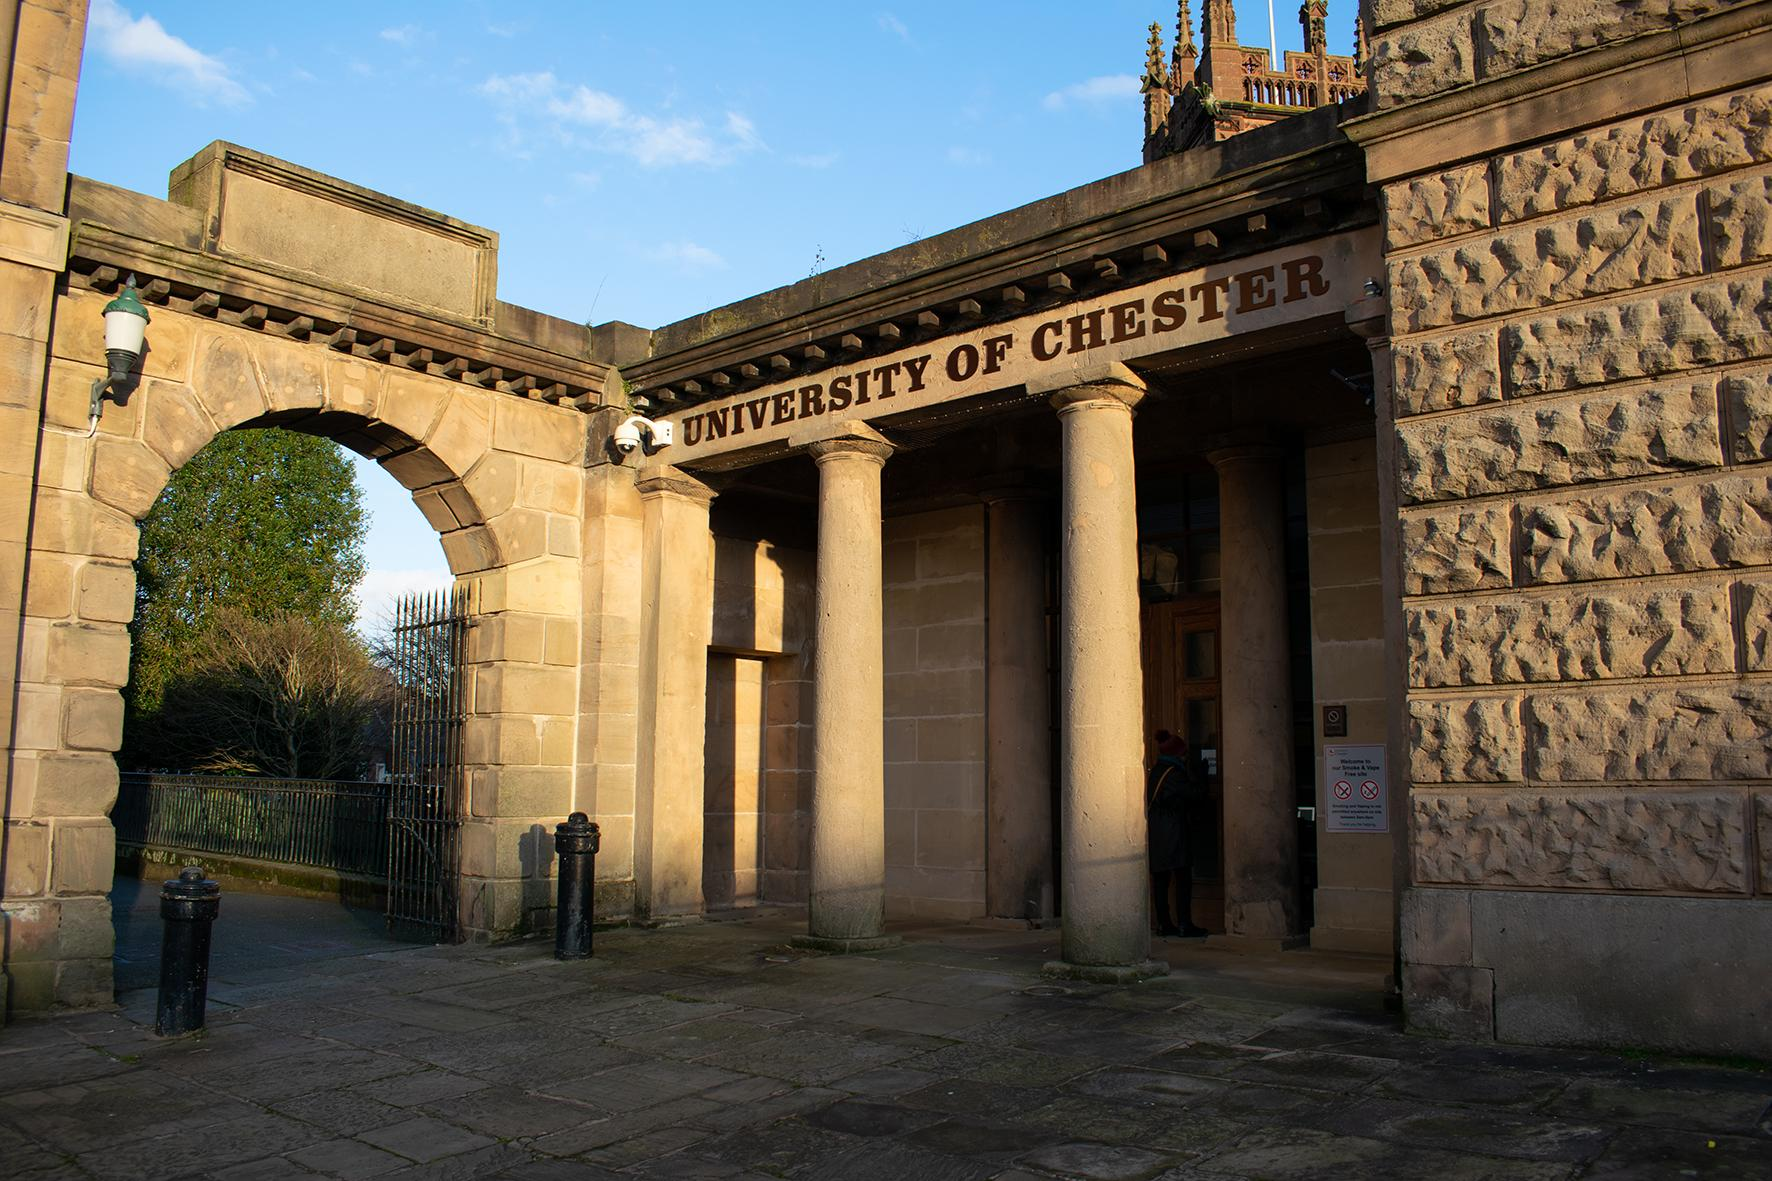 At University of Chester, PTSG graduates in electrical services